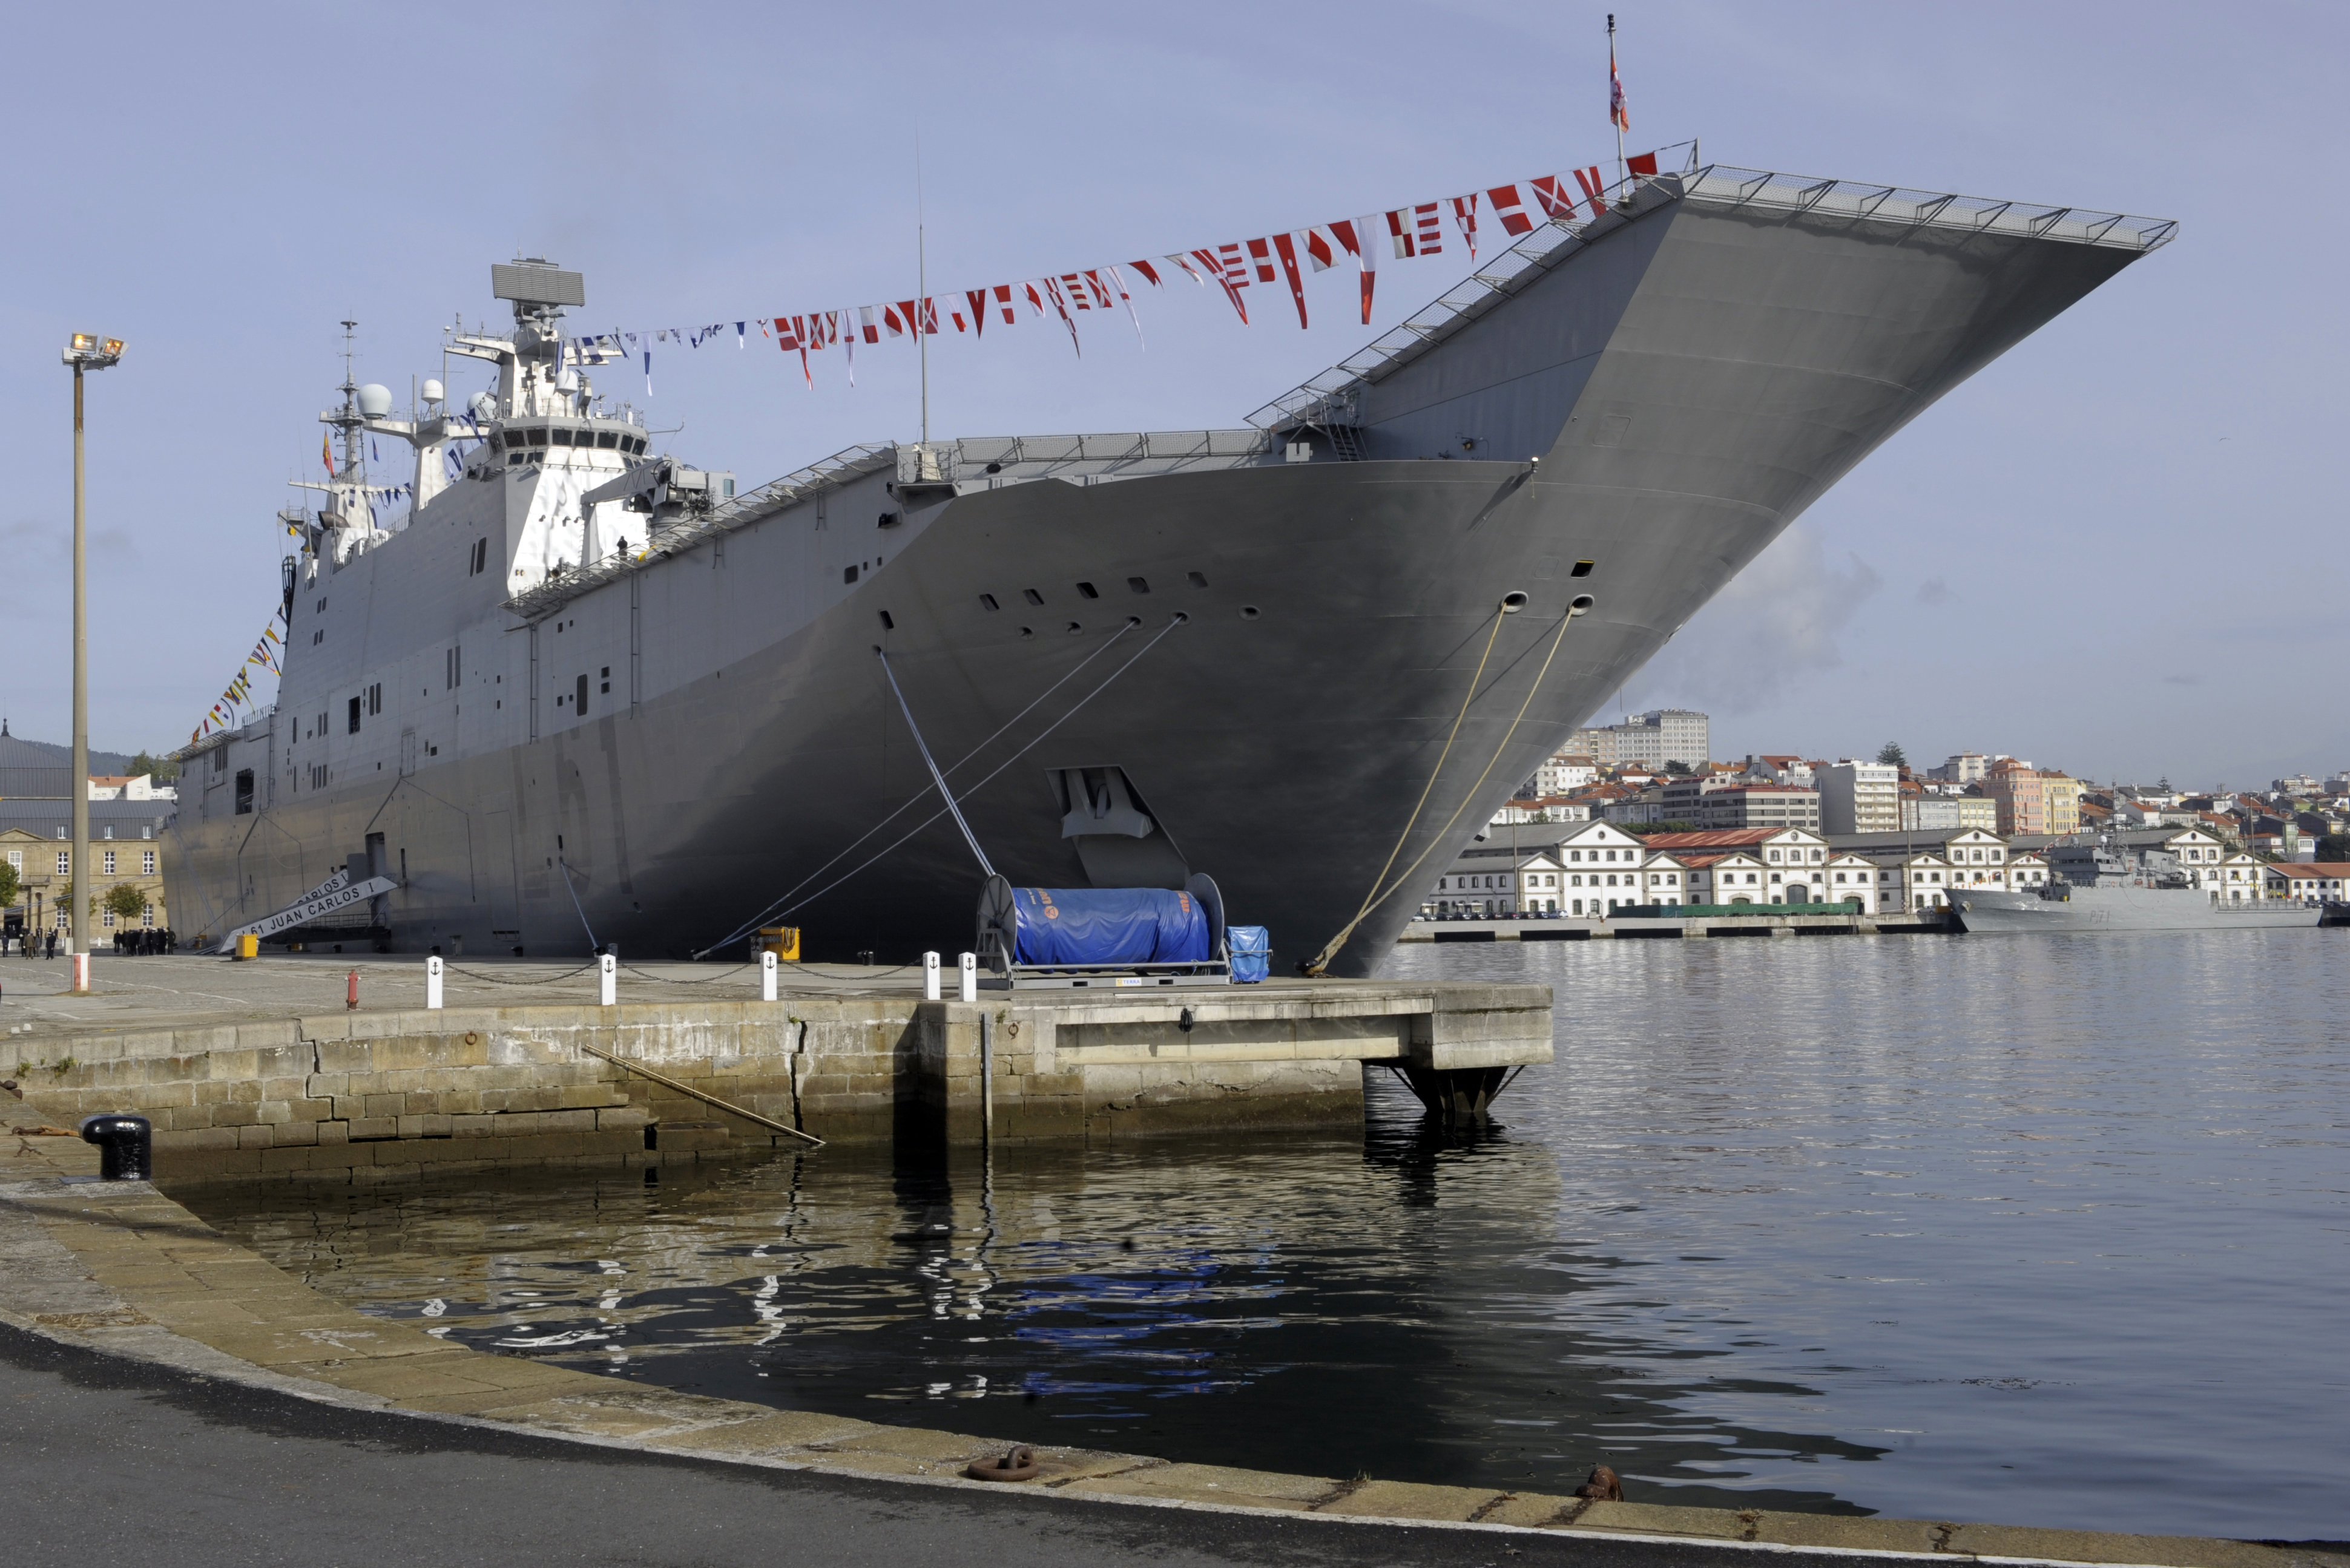 The Spanish Navy's strategic projection vessel Juan Carlos I is pictured during its giving ceremony at the Ferrol Naval Base, on September 30, 2010